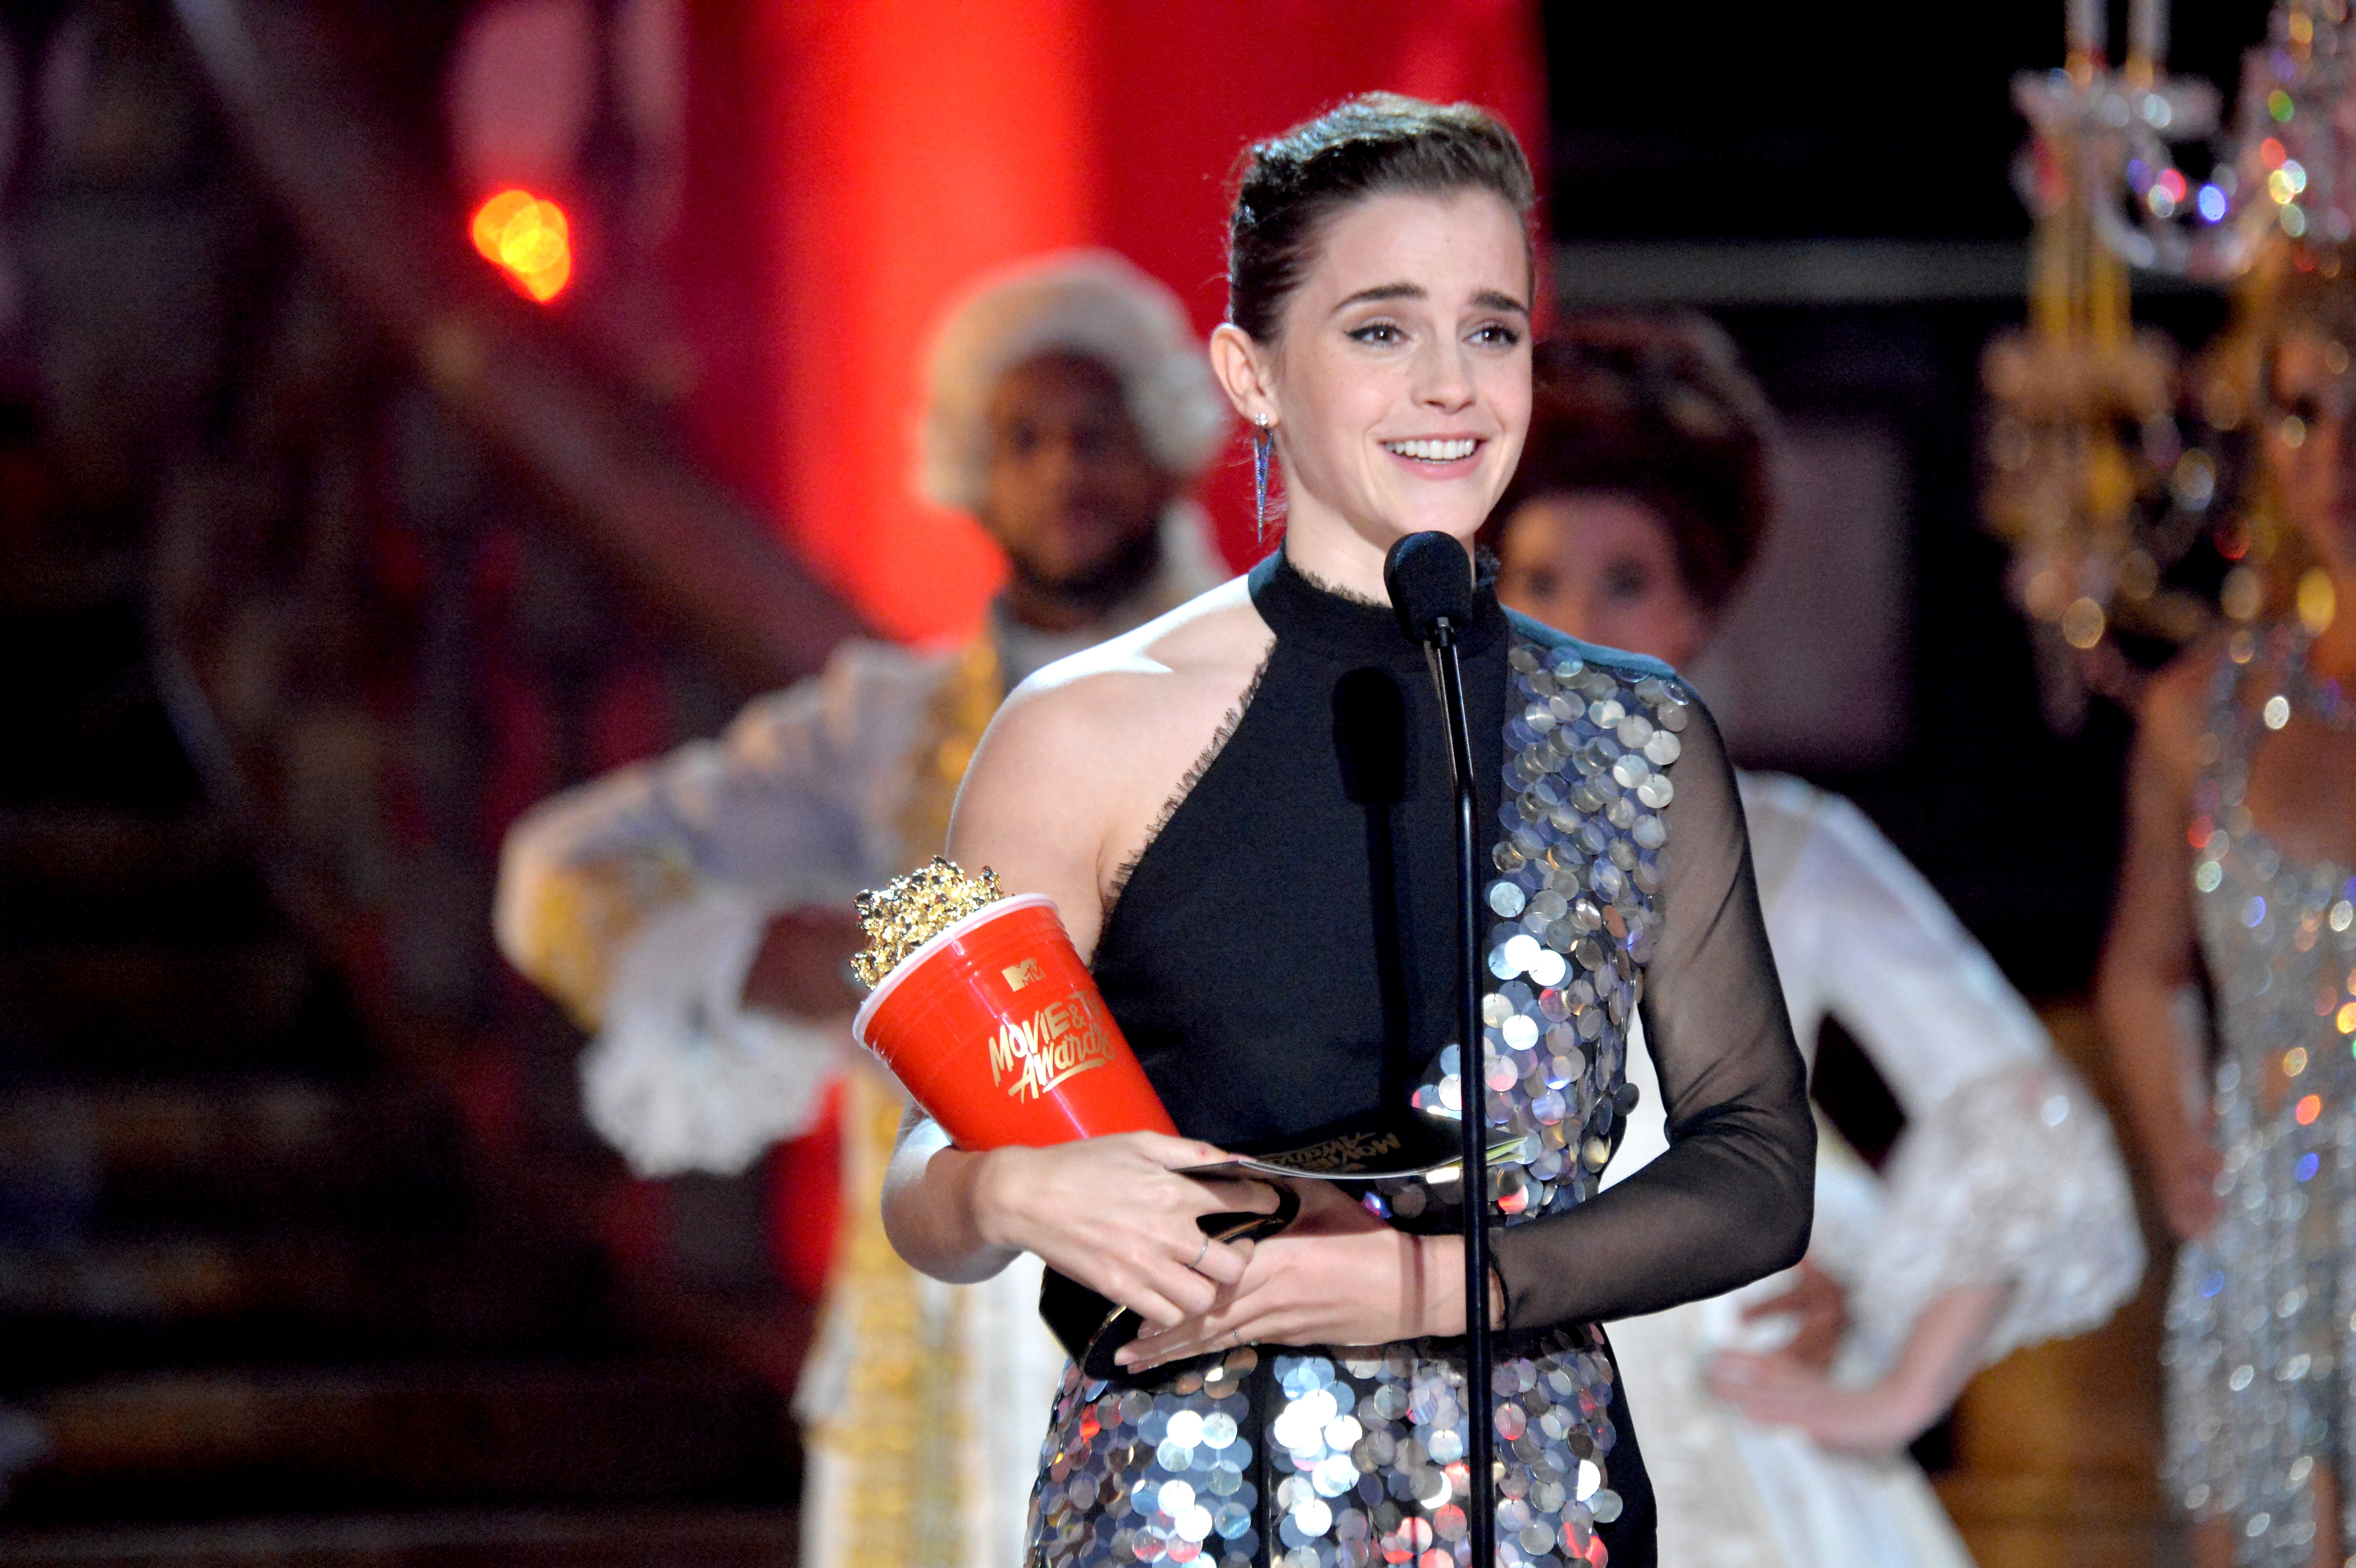 Emma Watson accepts the award for Best Actor in a Movie during the 2017 MTV Movie And TV Awards on May 7, 2017 in Los Angeles, California.